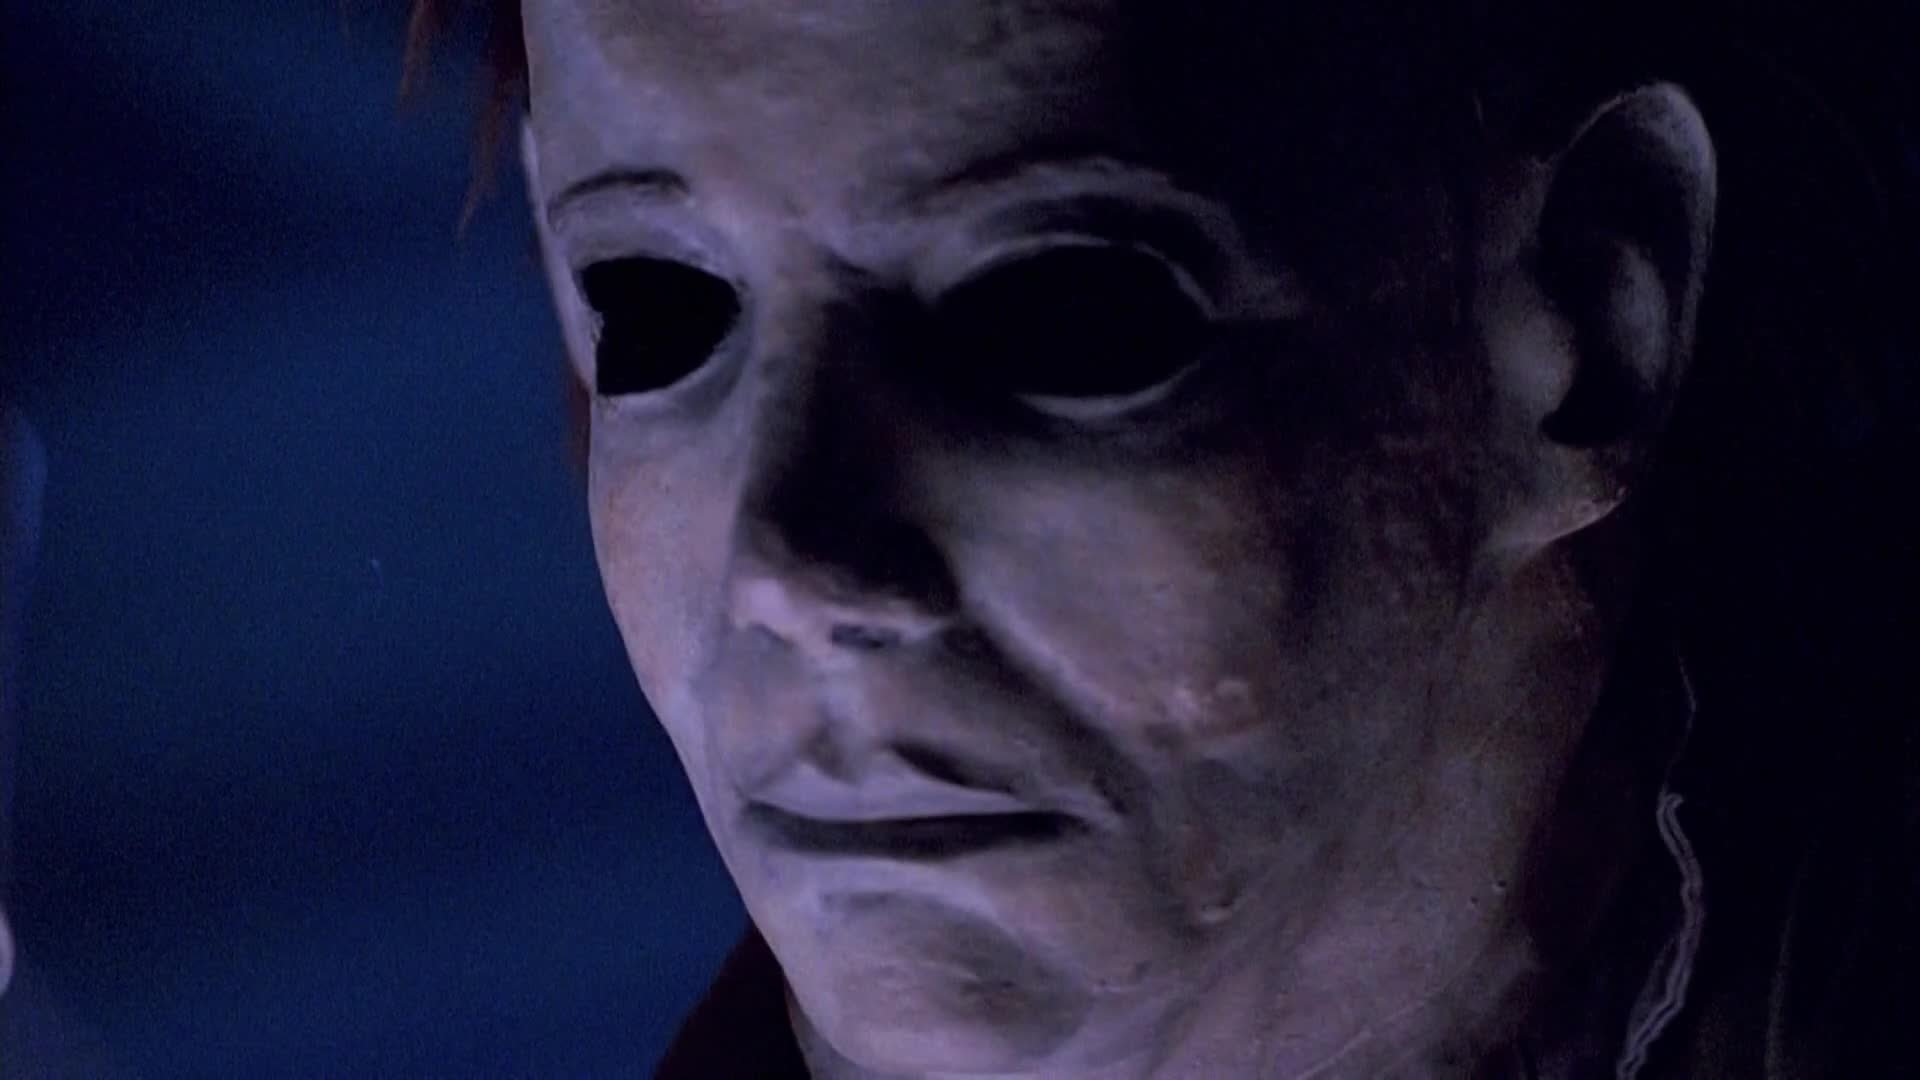 michael myers actor for halloween h20 reveals he never watched the